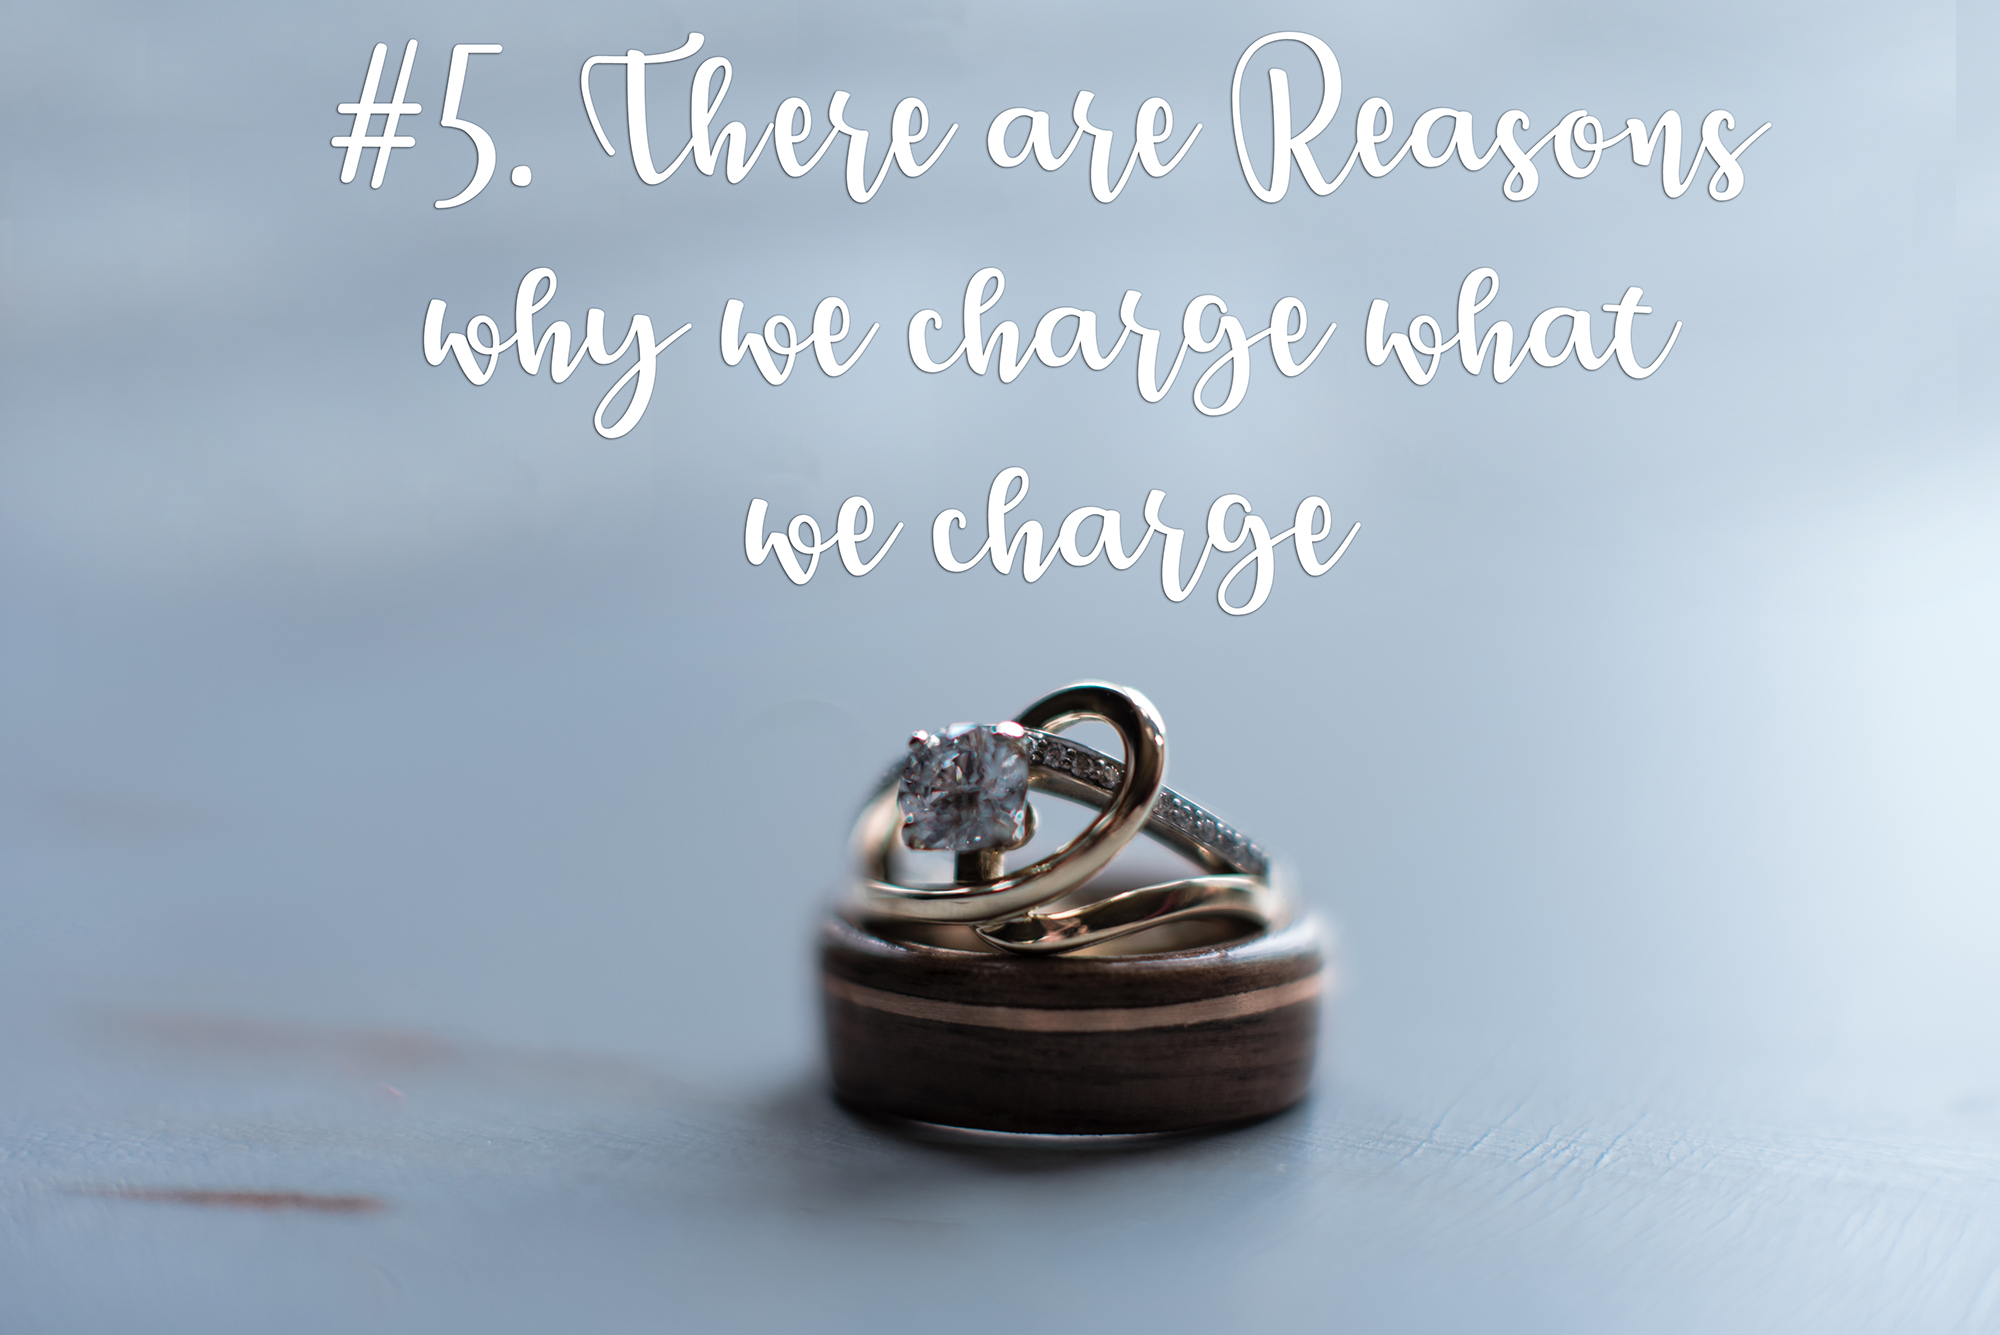 There are reasons we charge what we charge.